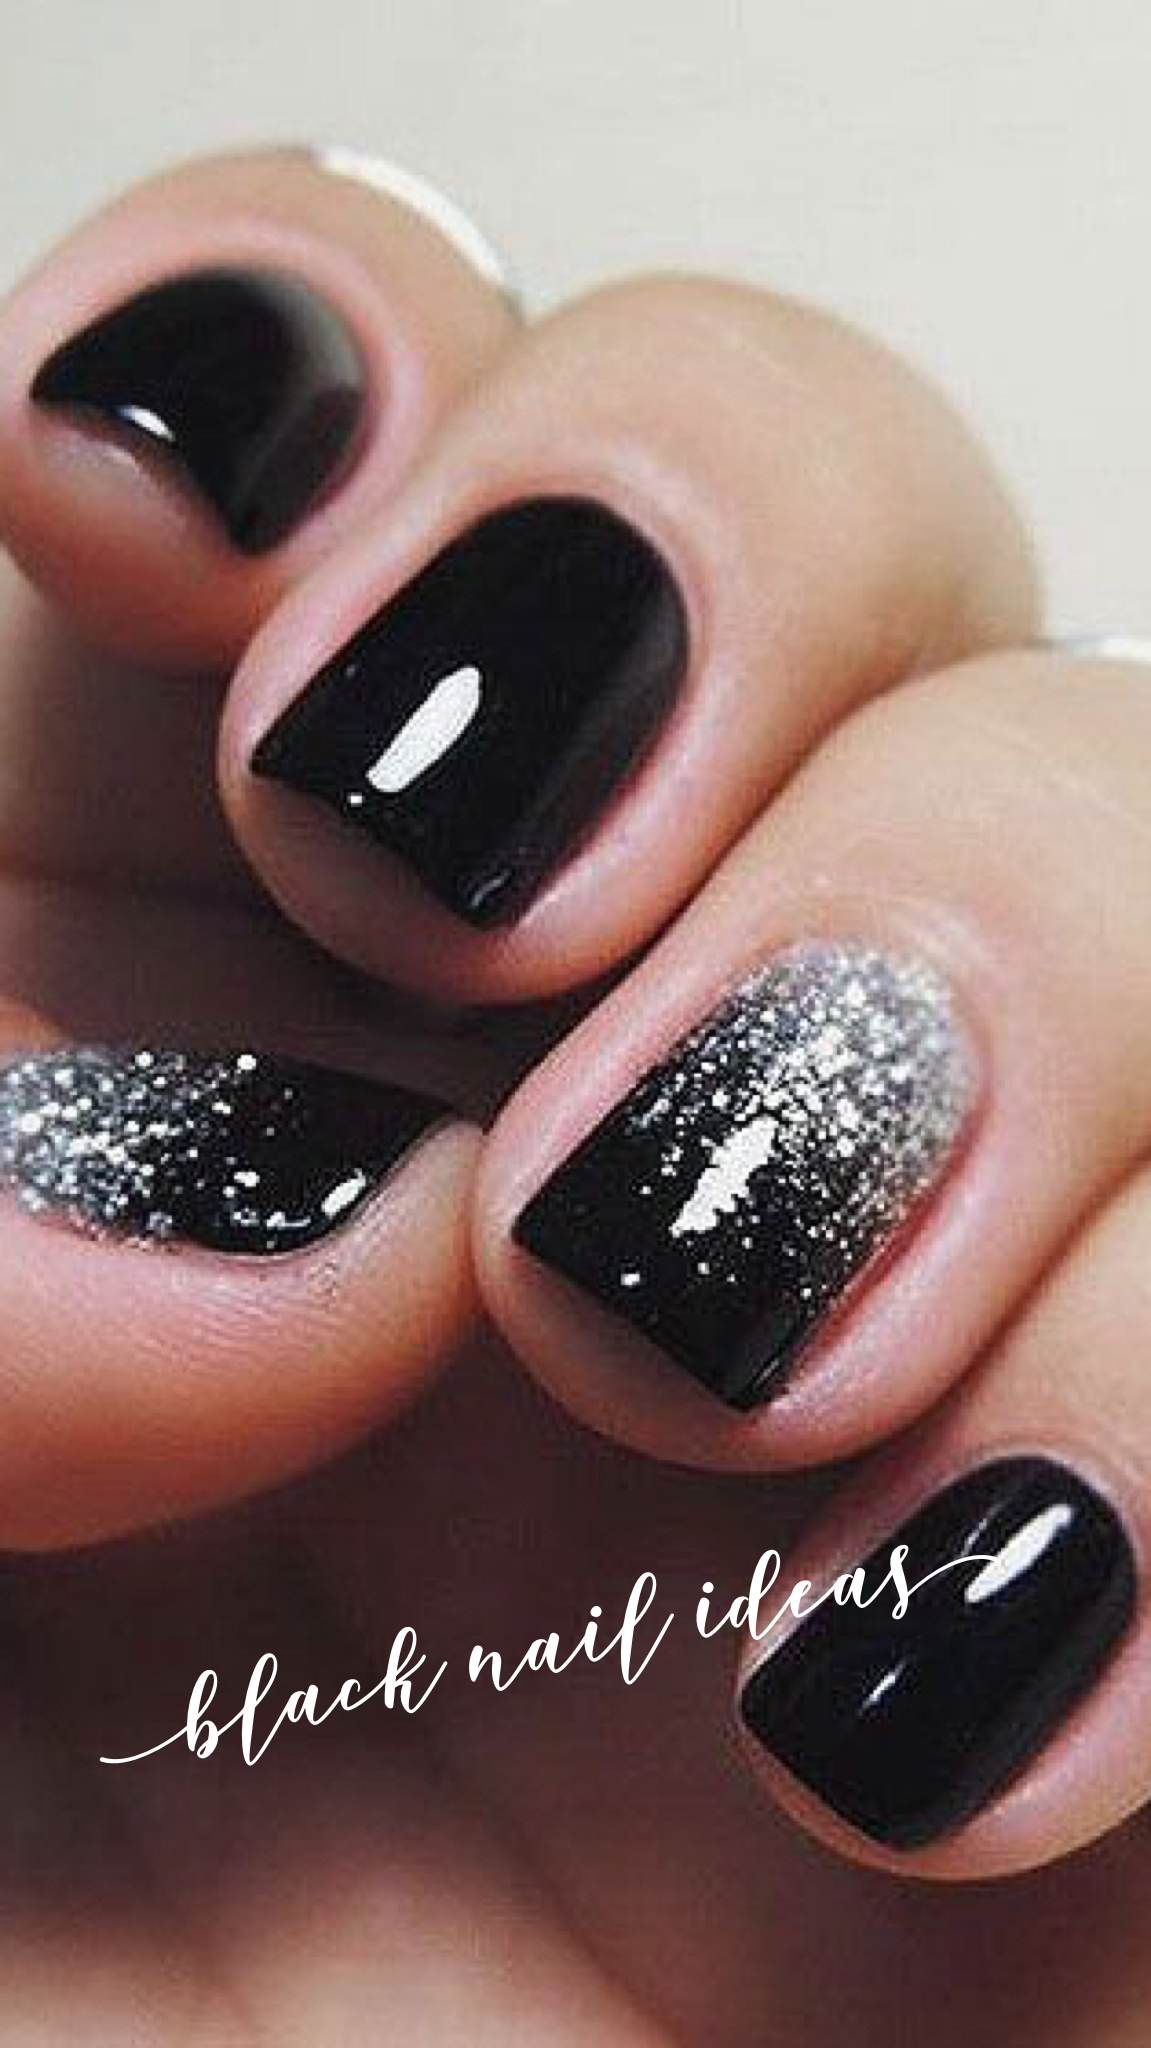 Black nails ideas – Archive Blog